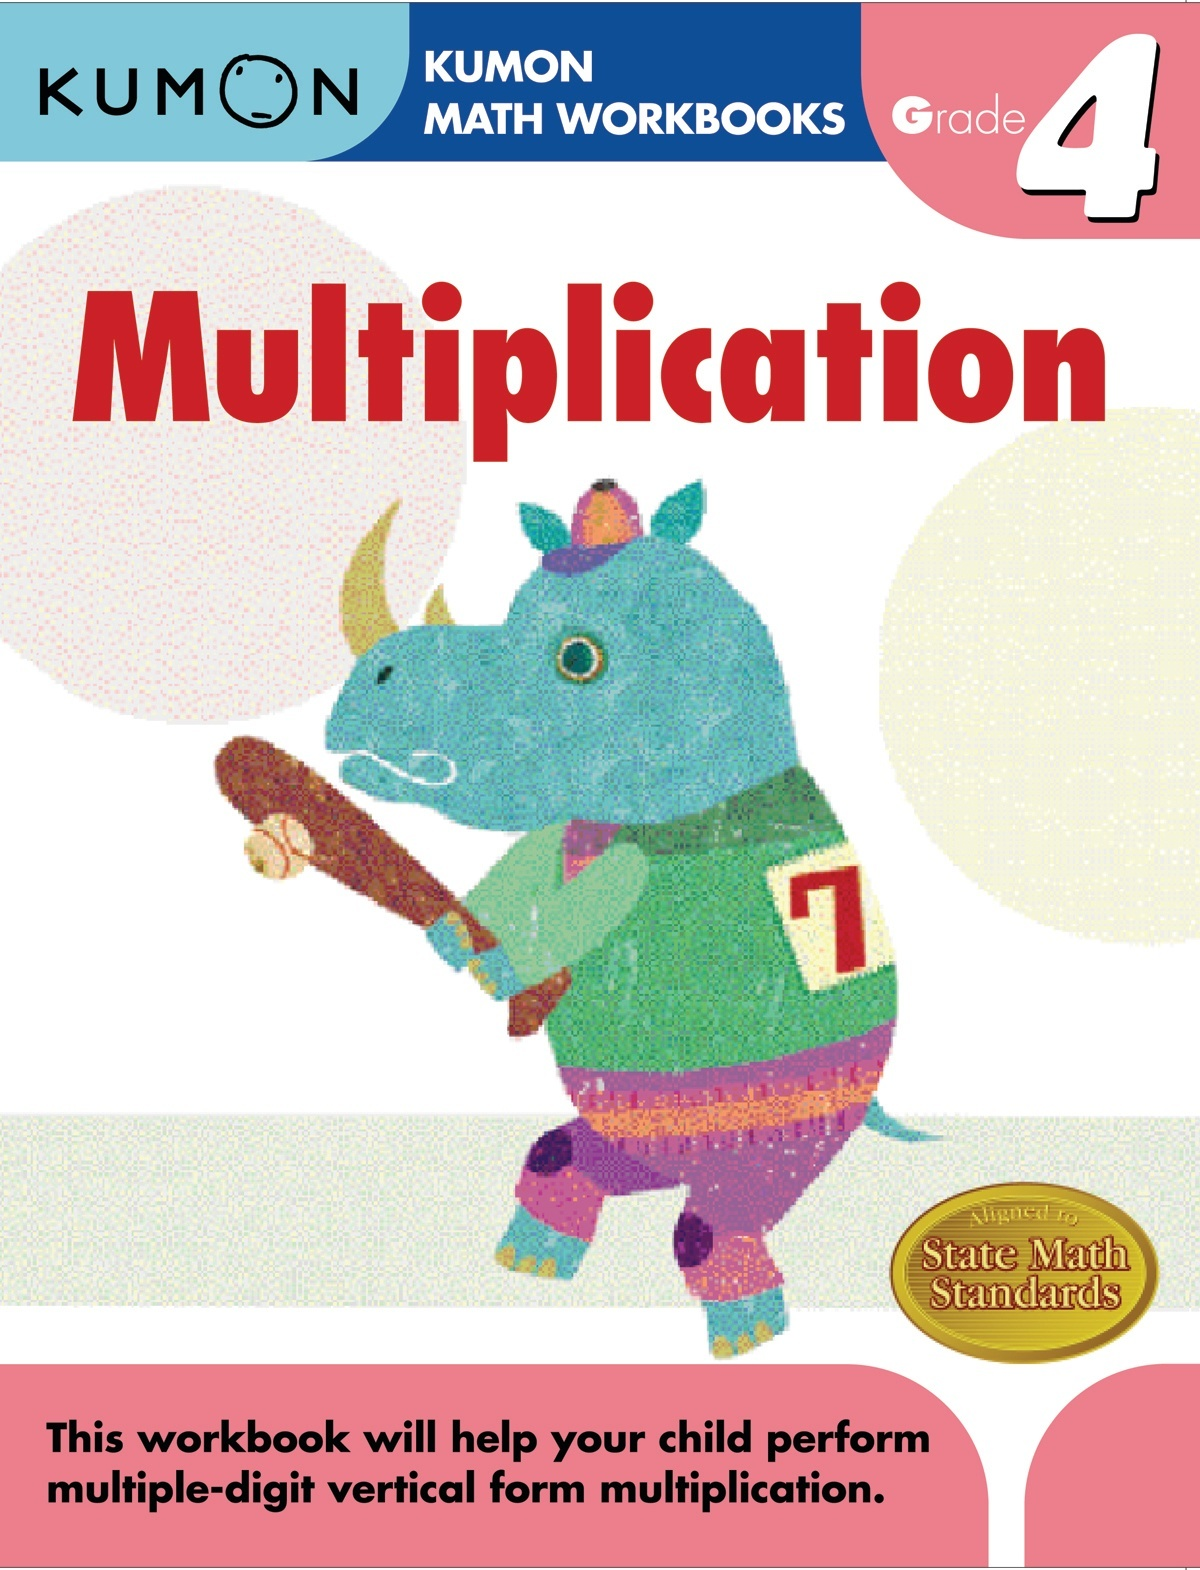 Kumon Multiplication Grade 4 - Ziggies Educational Supplies